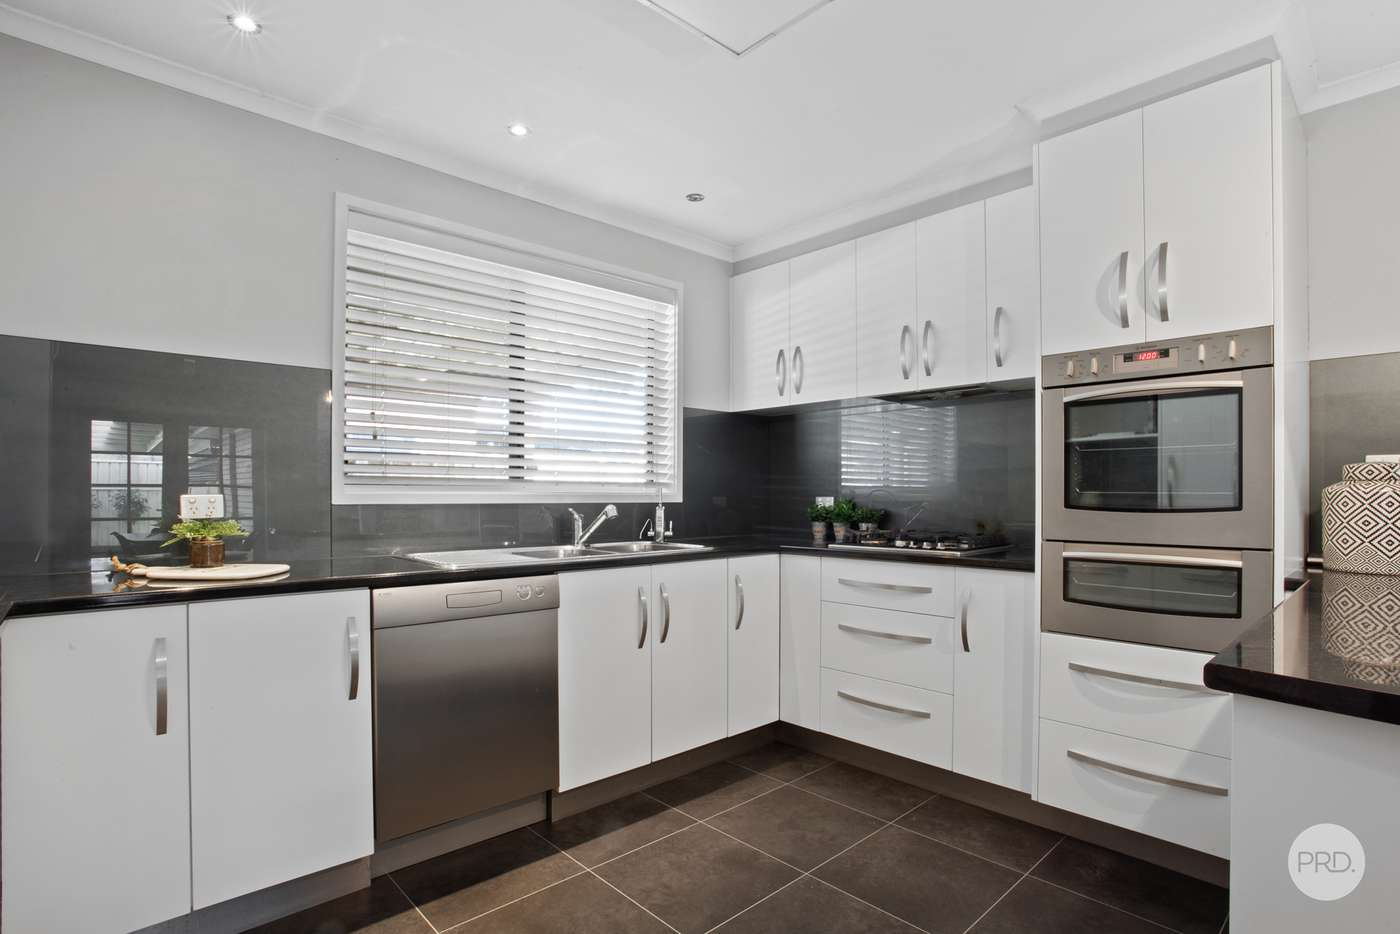 Sixth view of Homely house listing, 220 Holdsworth Road, North Bendigo VIC 3550